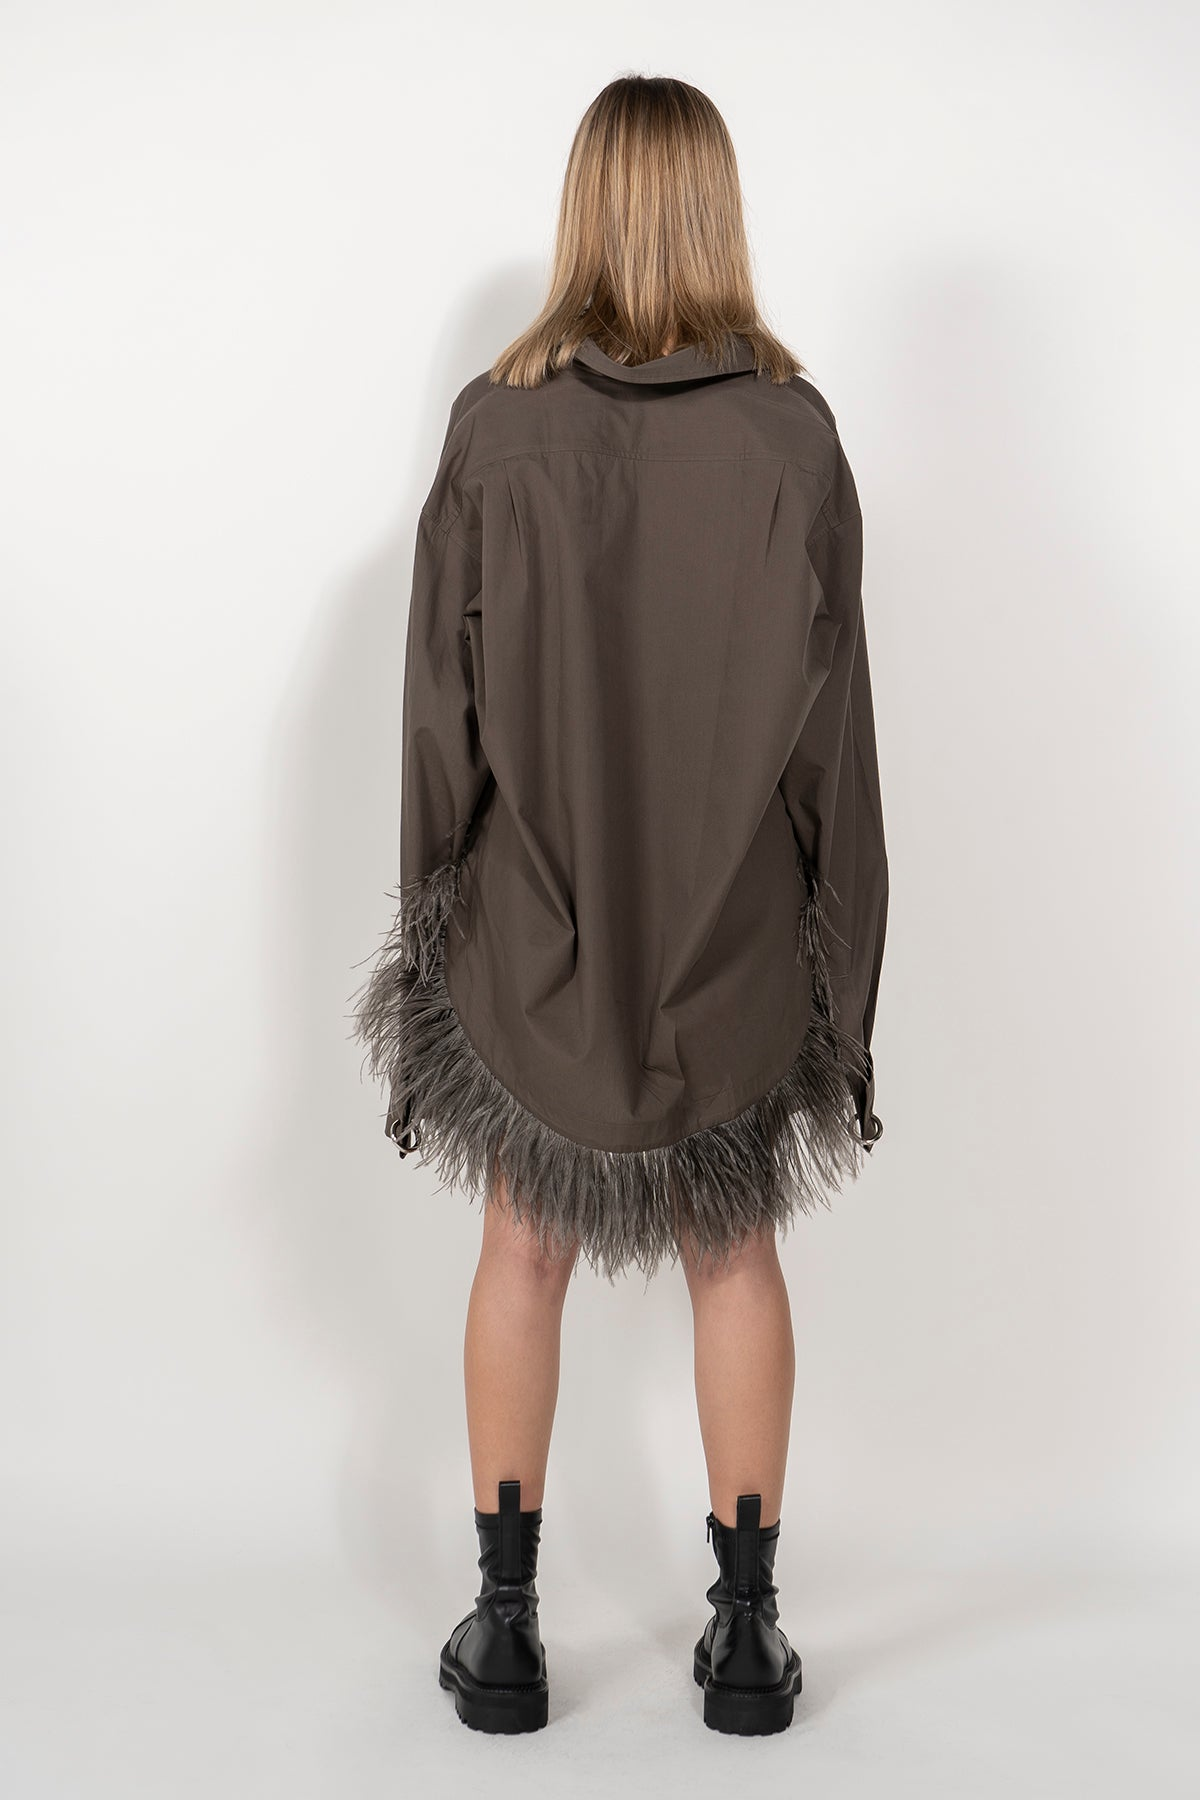 KHAKI XXL SHIRT WITH FEATHERS